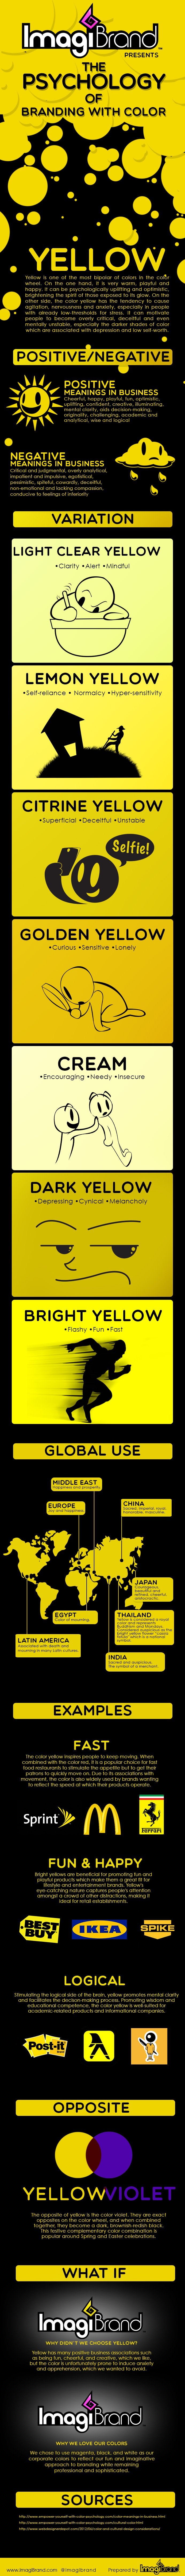 The Psychology of Branding with the Color YELLOW [infographic] - ImagiBrand